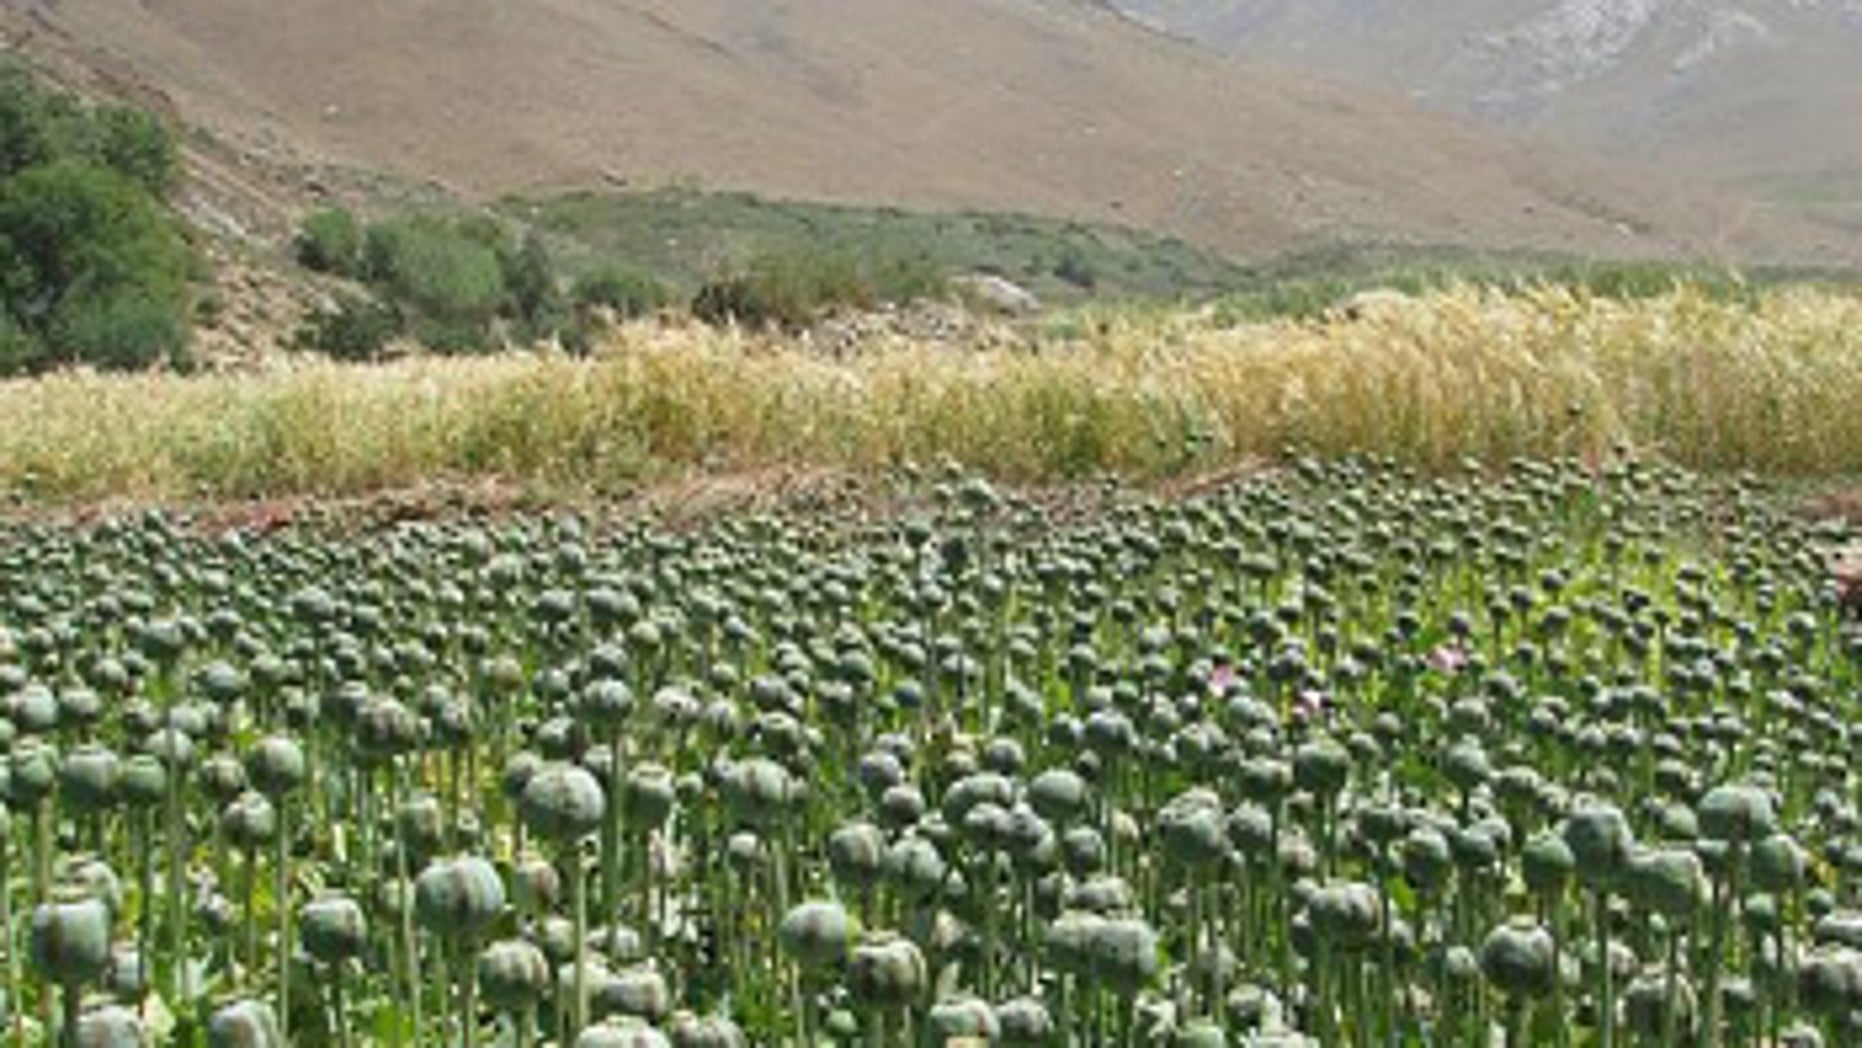 Opium poppies: Blooming financial support for the Taliban